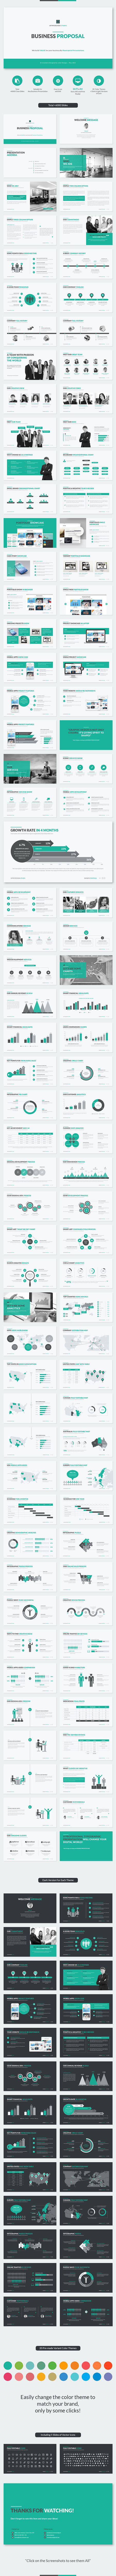 Business proposal powerpoint template wooenvato demo only created for real world proven presentation friedricerecipe Image collections